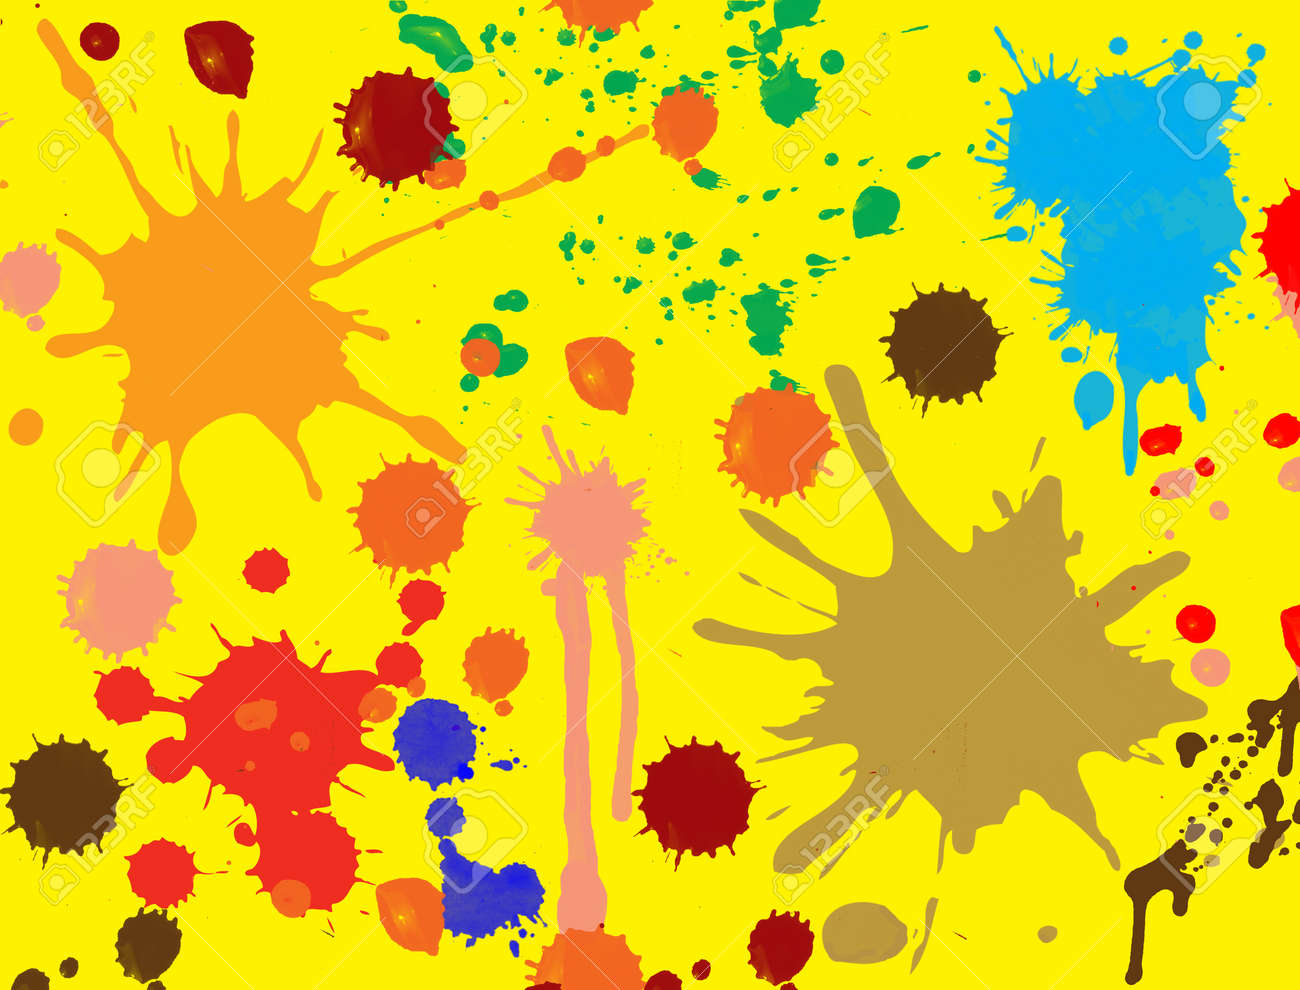 Abstract Yellow Paintings Splatter Paint Brush Abstract